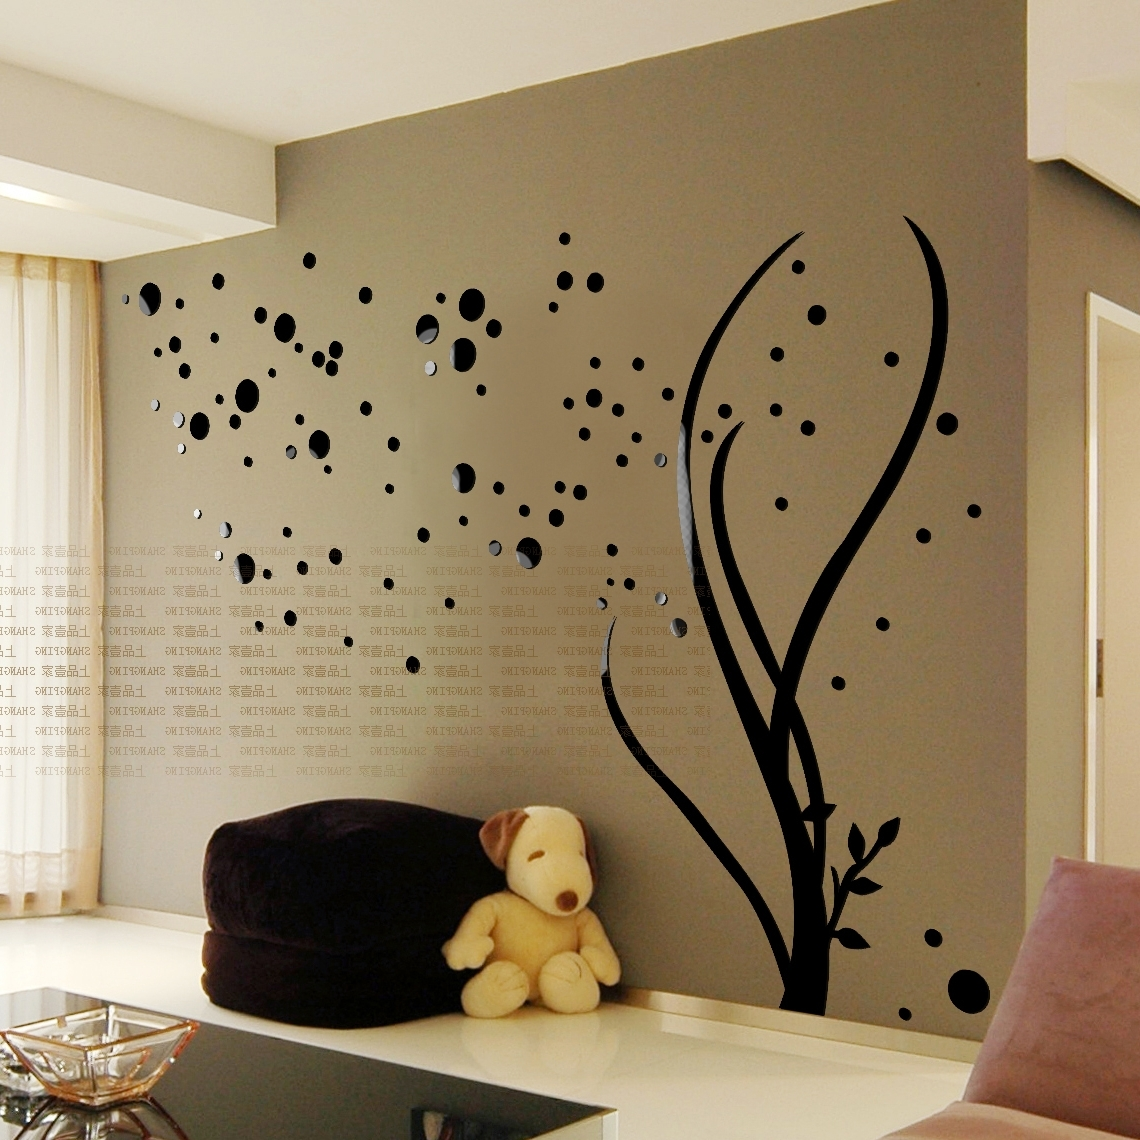 Unusual 3D Wall Art Regarding Most Recently Released Unusual Ideas Design Wall Decor Stickers For Living Room (View 14 of 15)